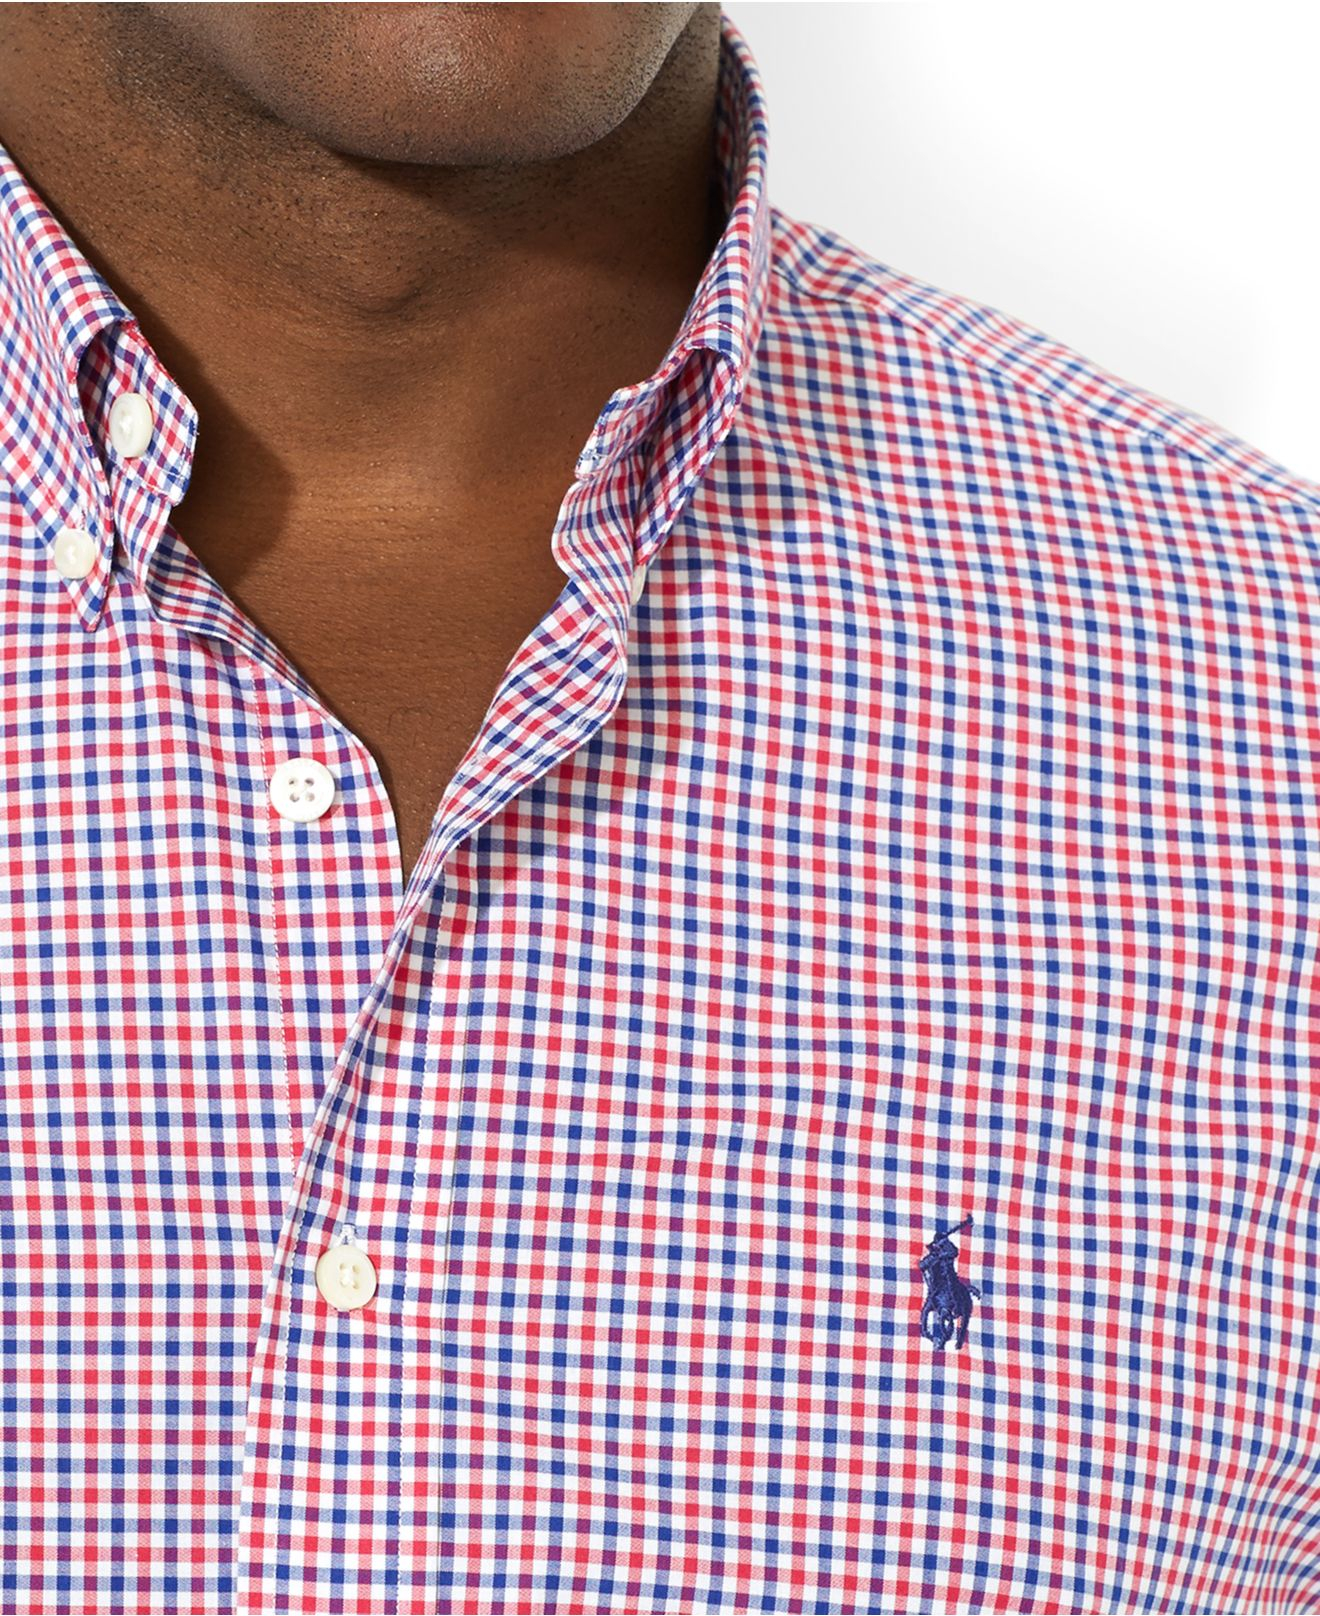 Polo Ralph Lauren Slim Fit Checked Oxford Shirt Red Blue Bcd Tofu